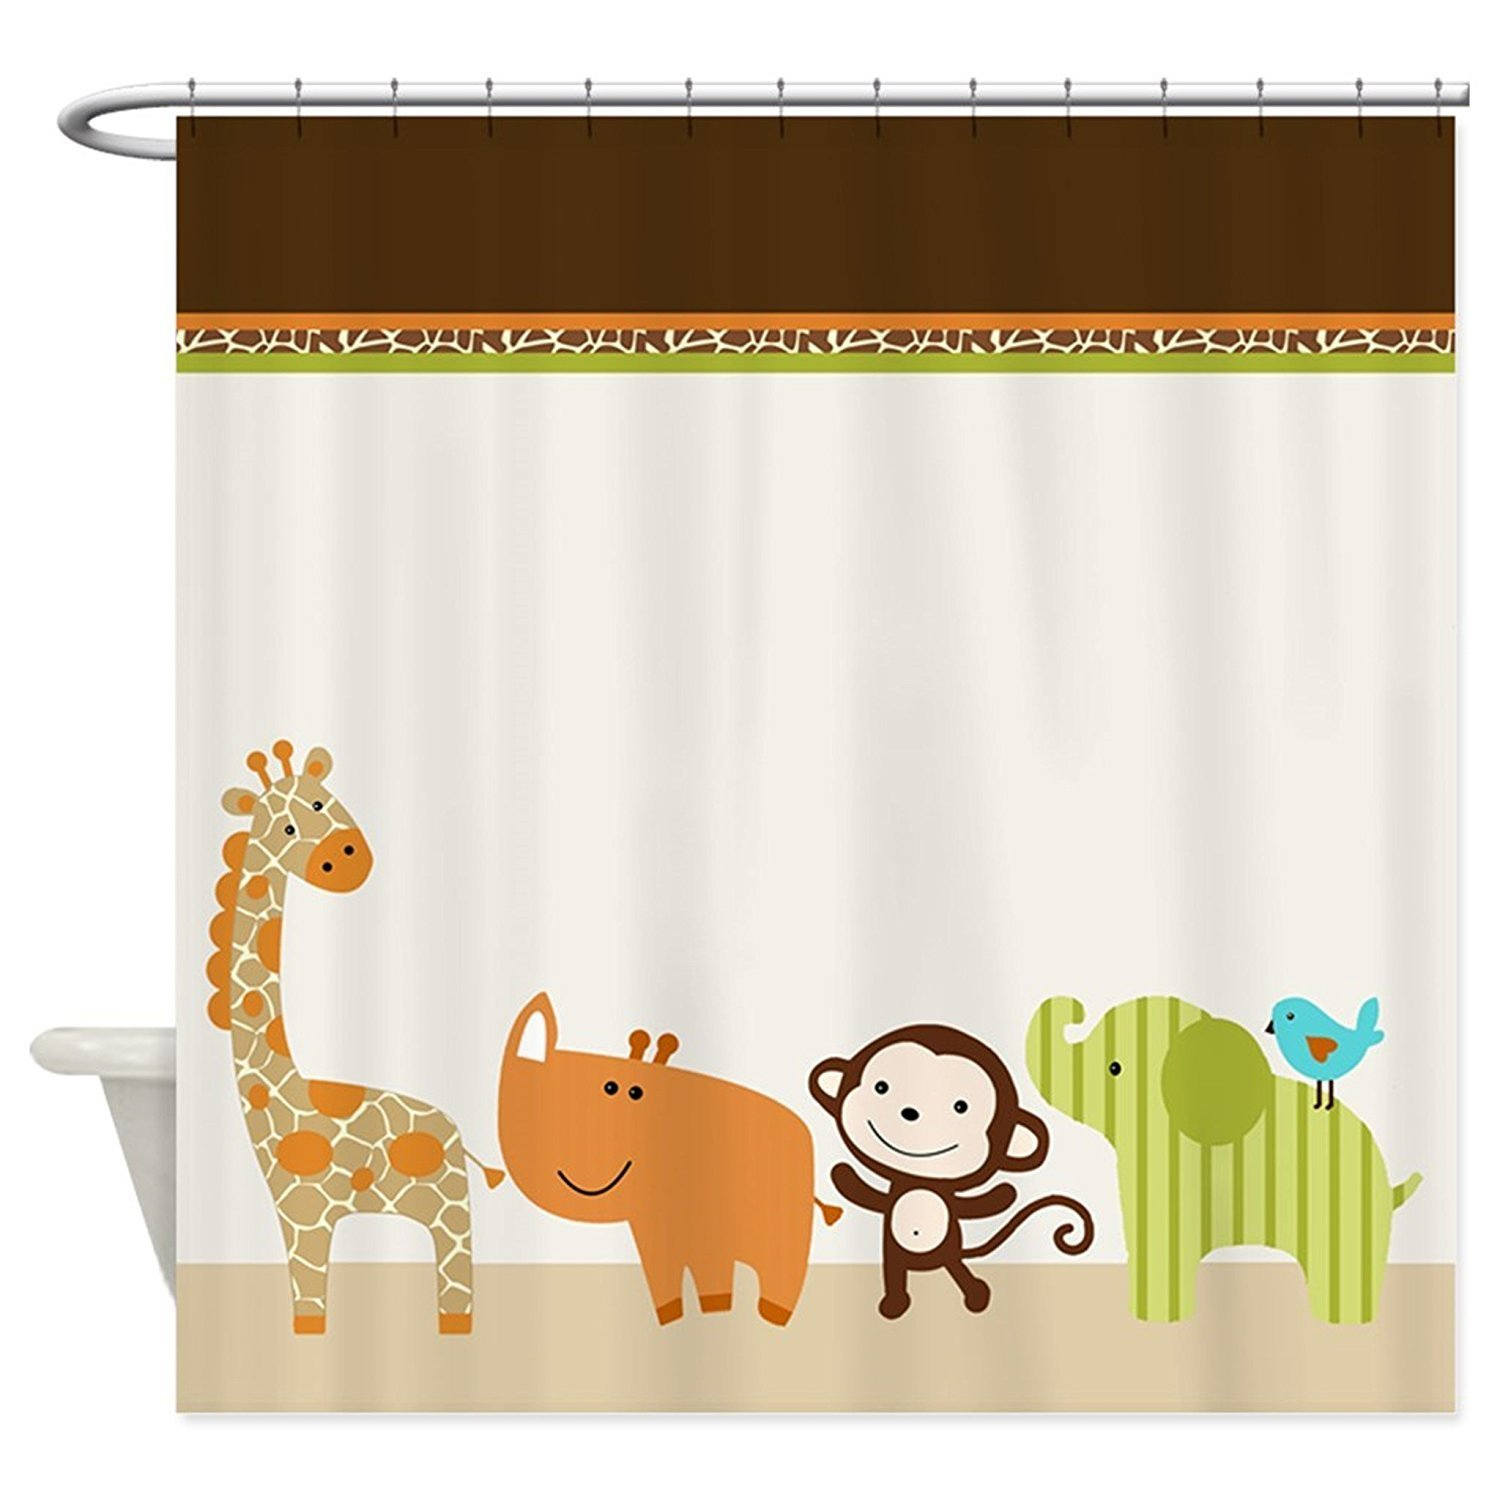 Curtain clipart curtain raiser Shower Liner Popular Curtains Curtain